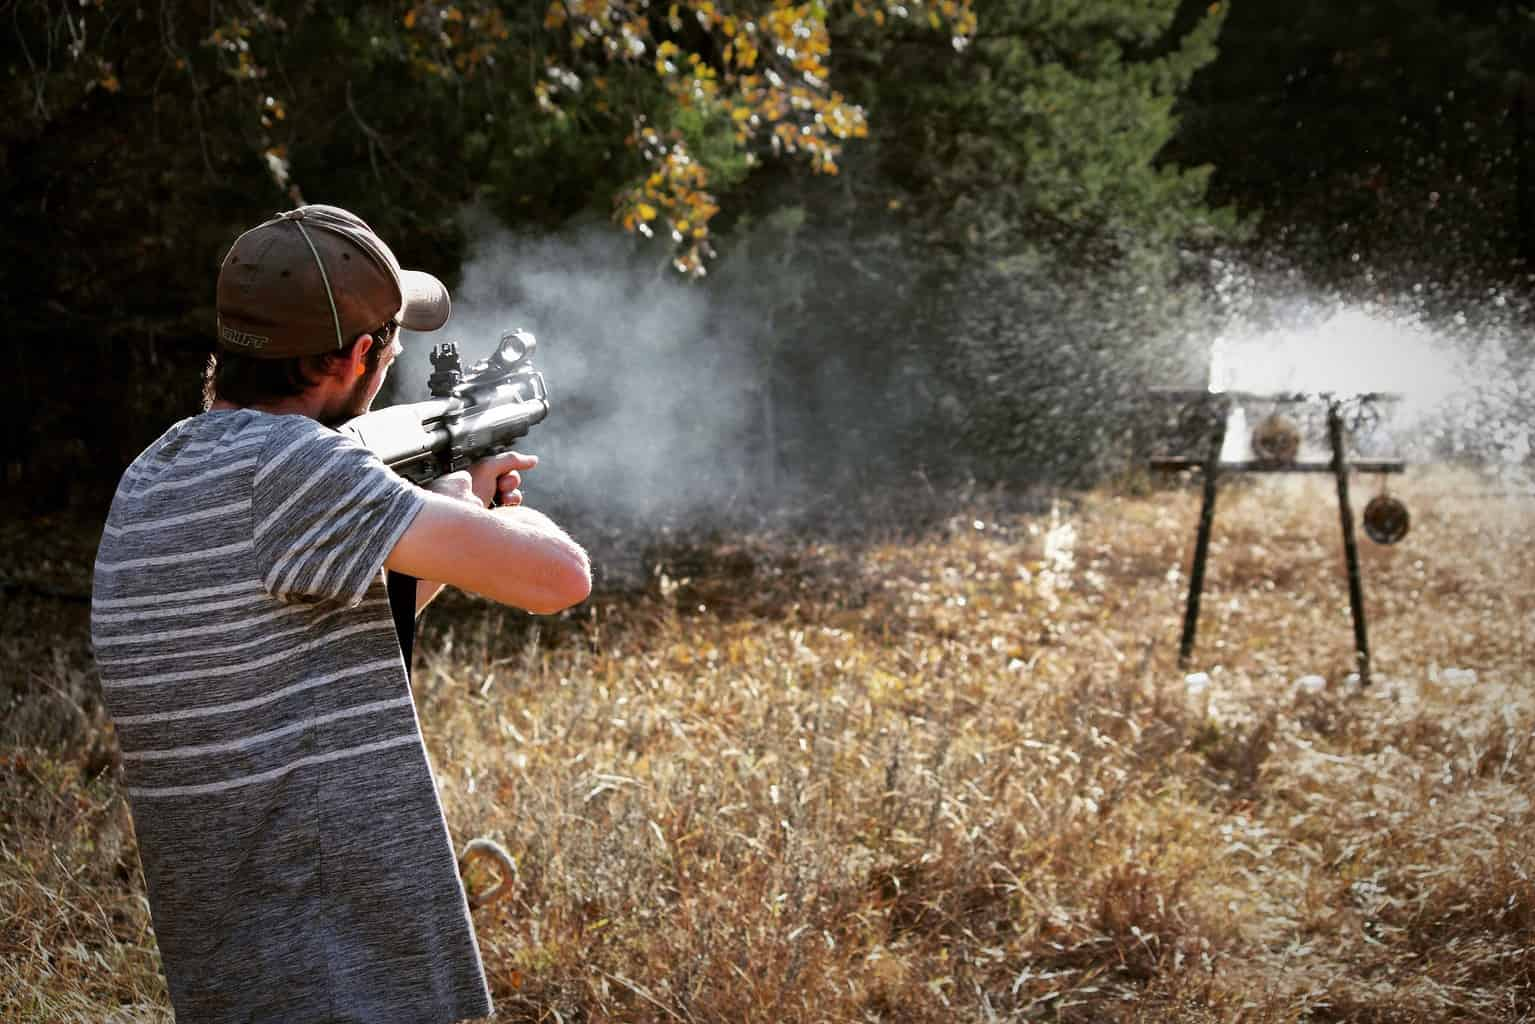 Guy wearing a cap and gray striped shirt shoot a target with a rifle